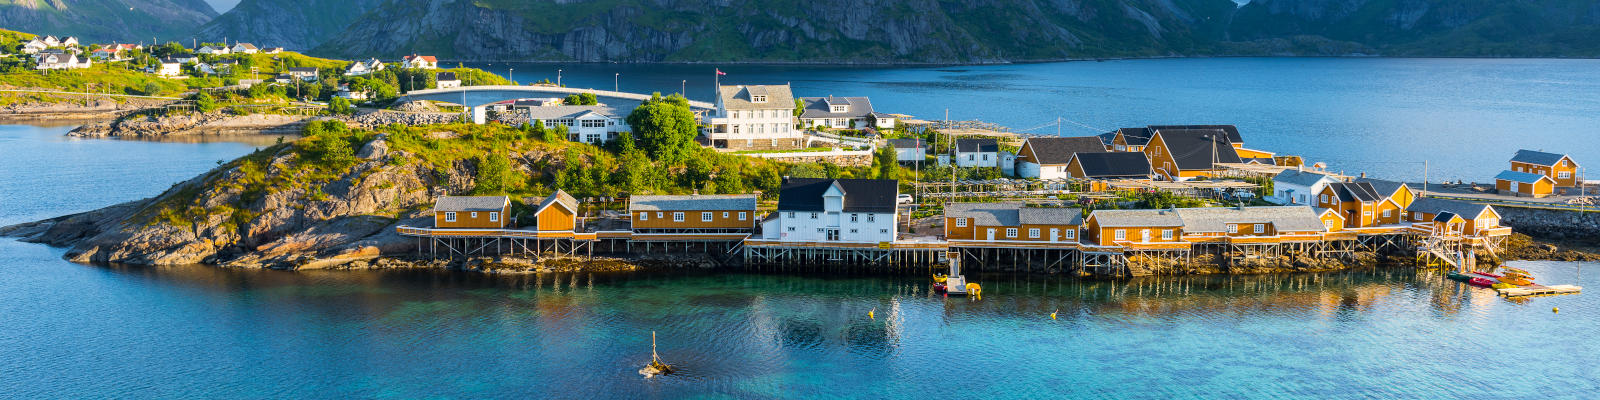 Seaside town in Norway with colourful houses